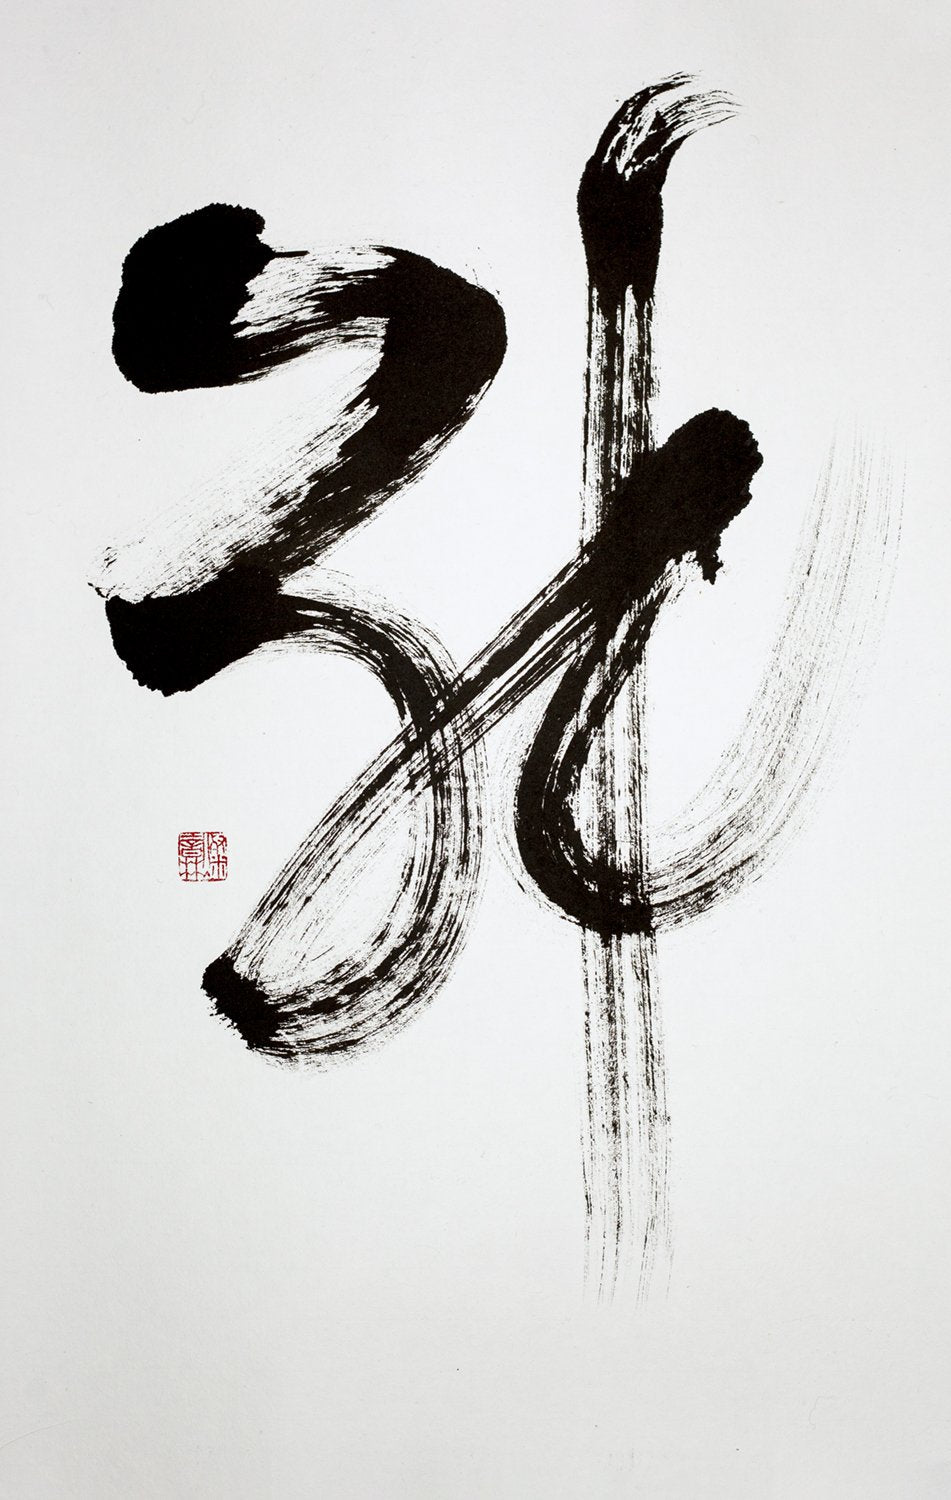 JAPANESE CALLIGRAPHY MEDIUM FORMAT